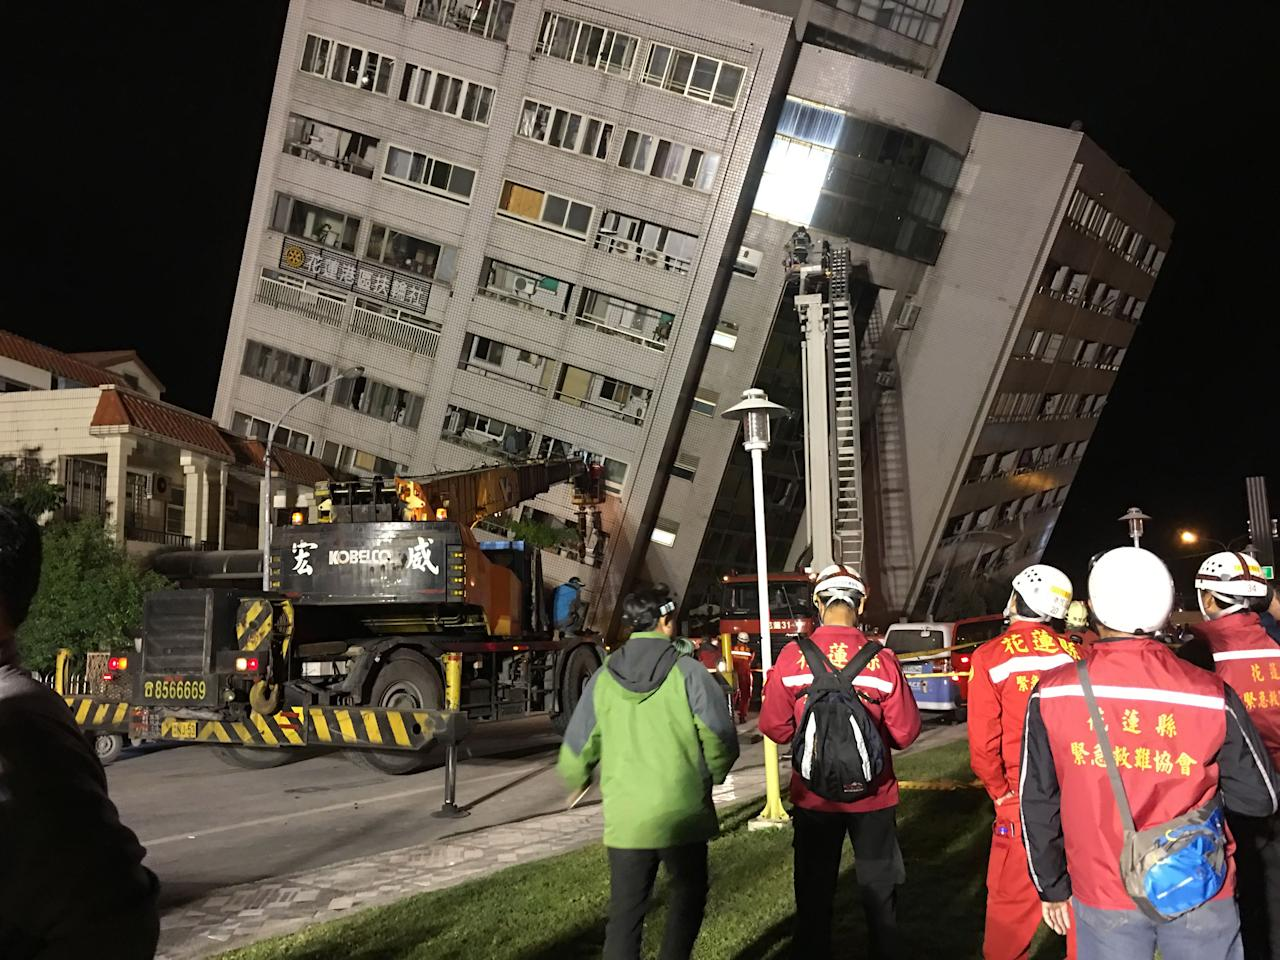 <p>A damaged building in Hualien, eastern Taiwan, after a magnitude 6 earthquake hit Hualien on the night of Feb. 6, 2018. (Photo: Shutterstock/EPA) </p>